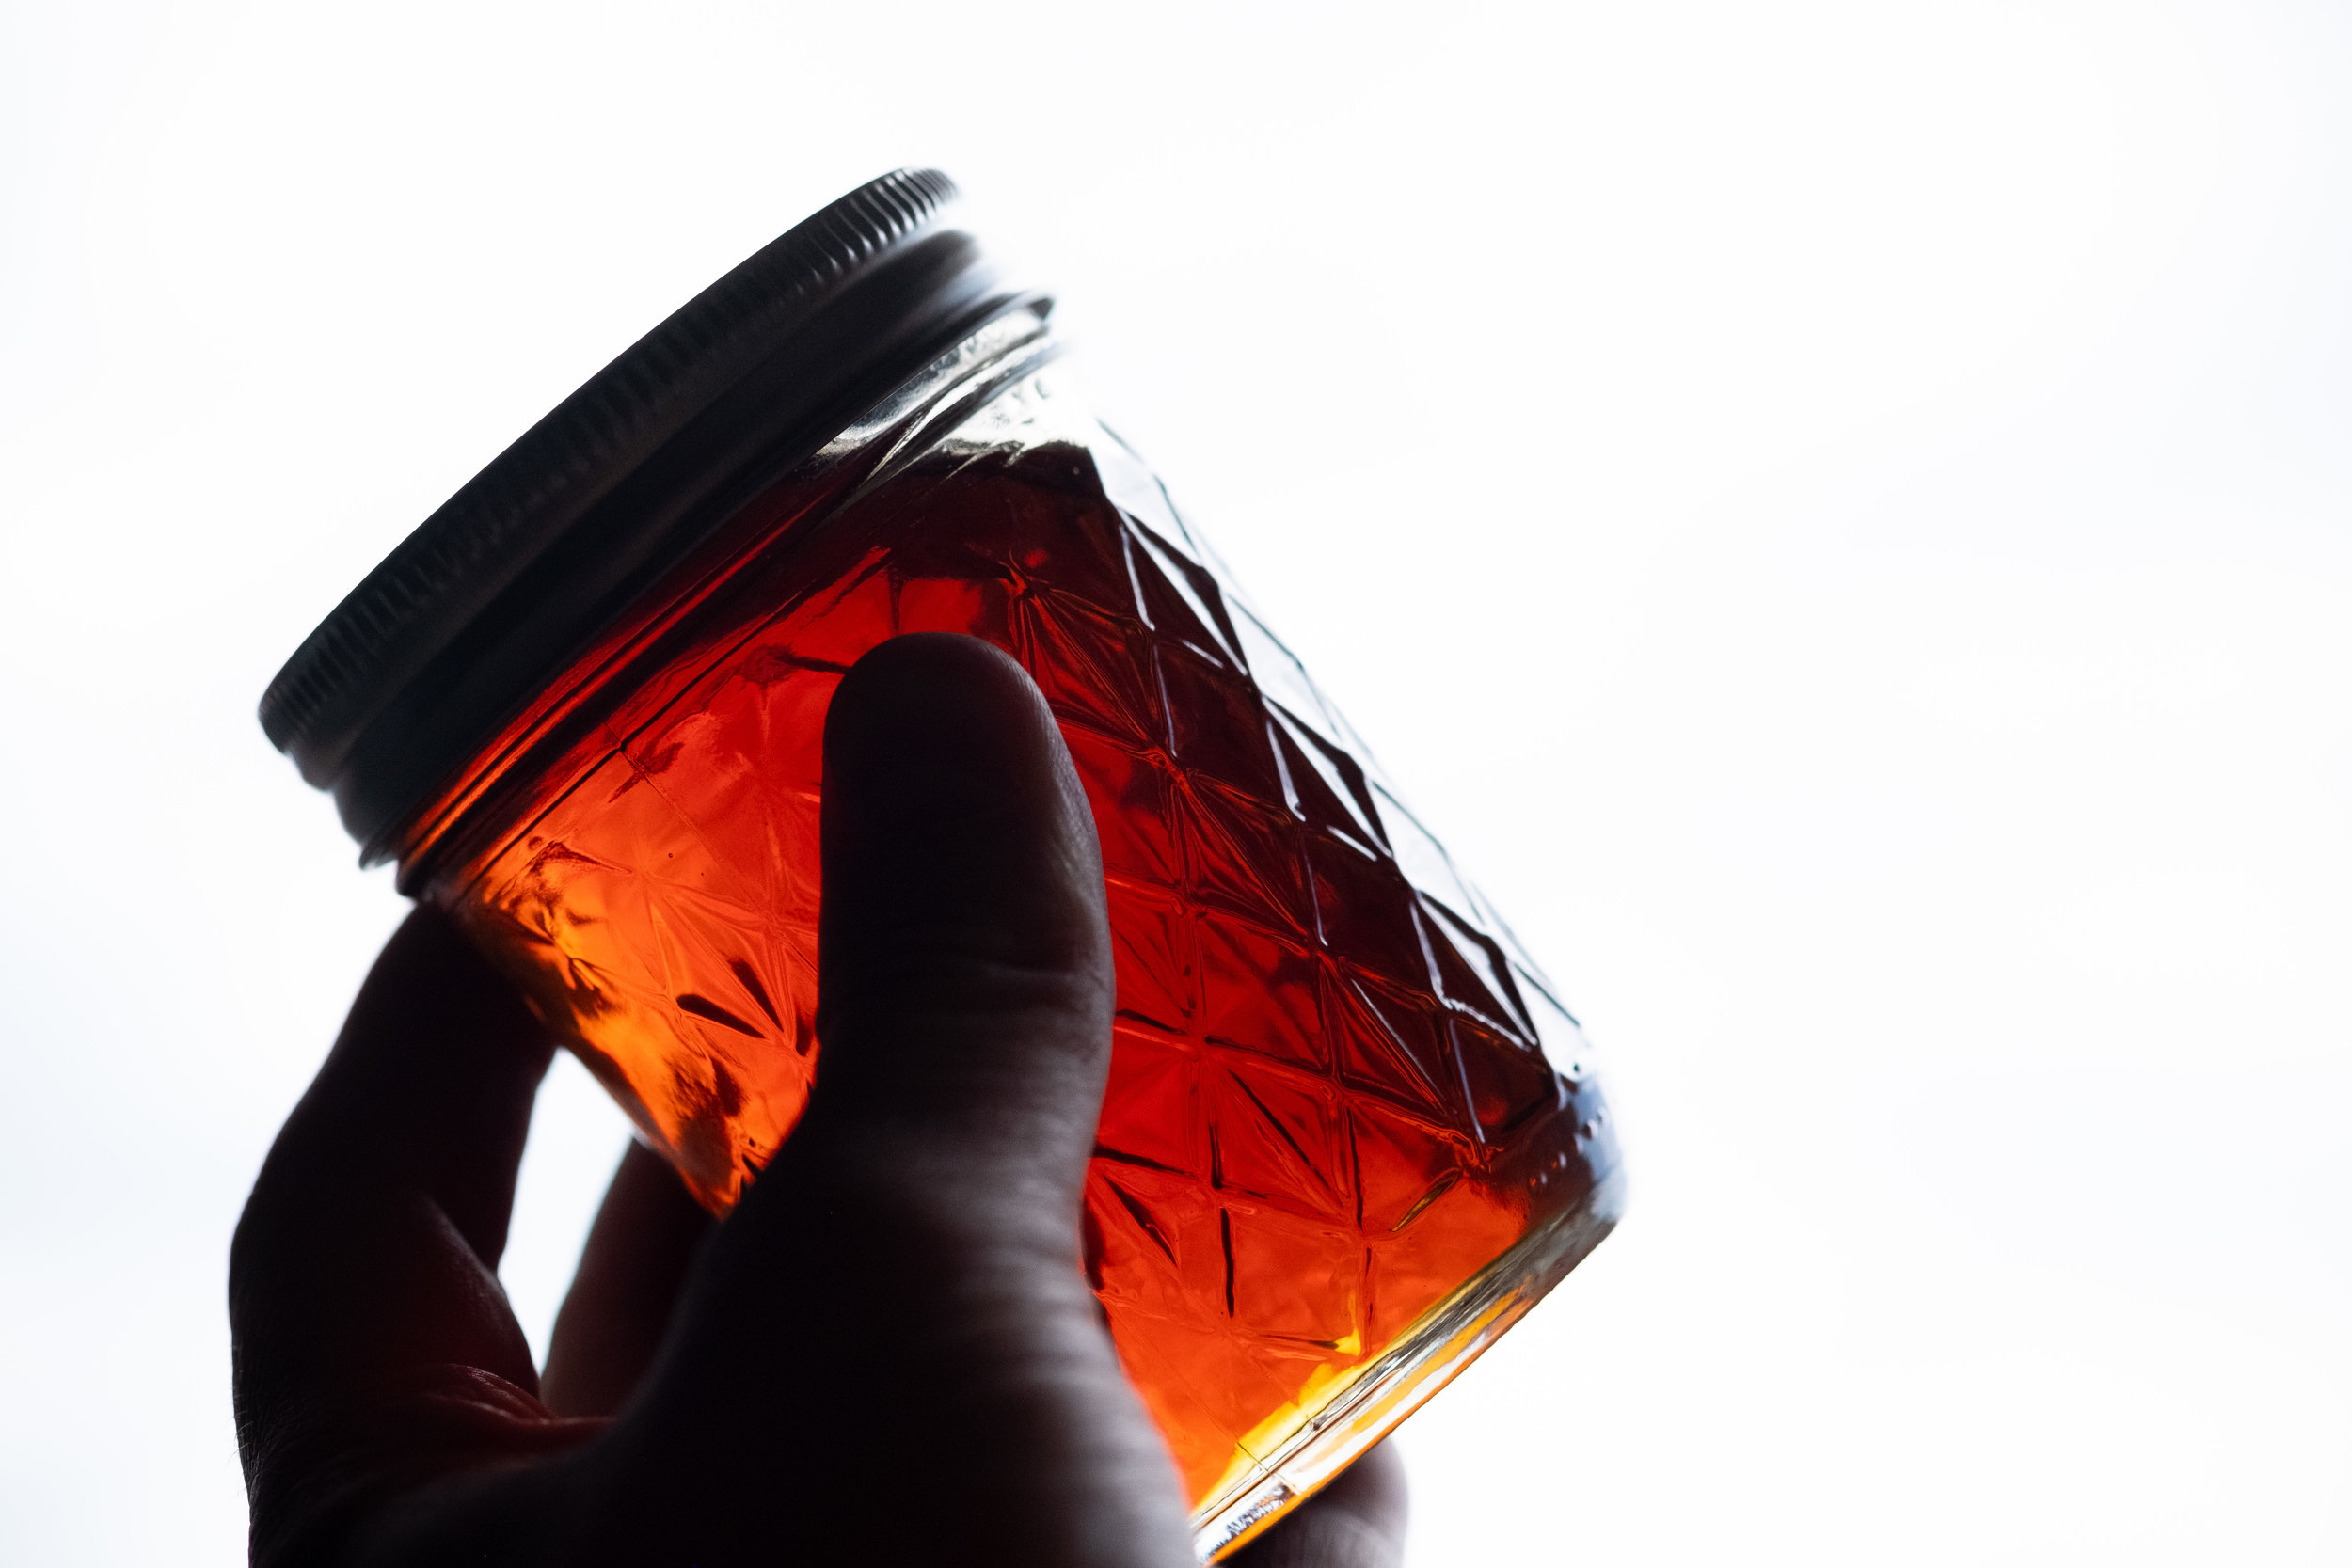 33 Hoaglund Homestead Syrup Finished in Hand.jpg